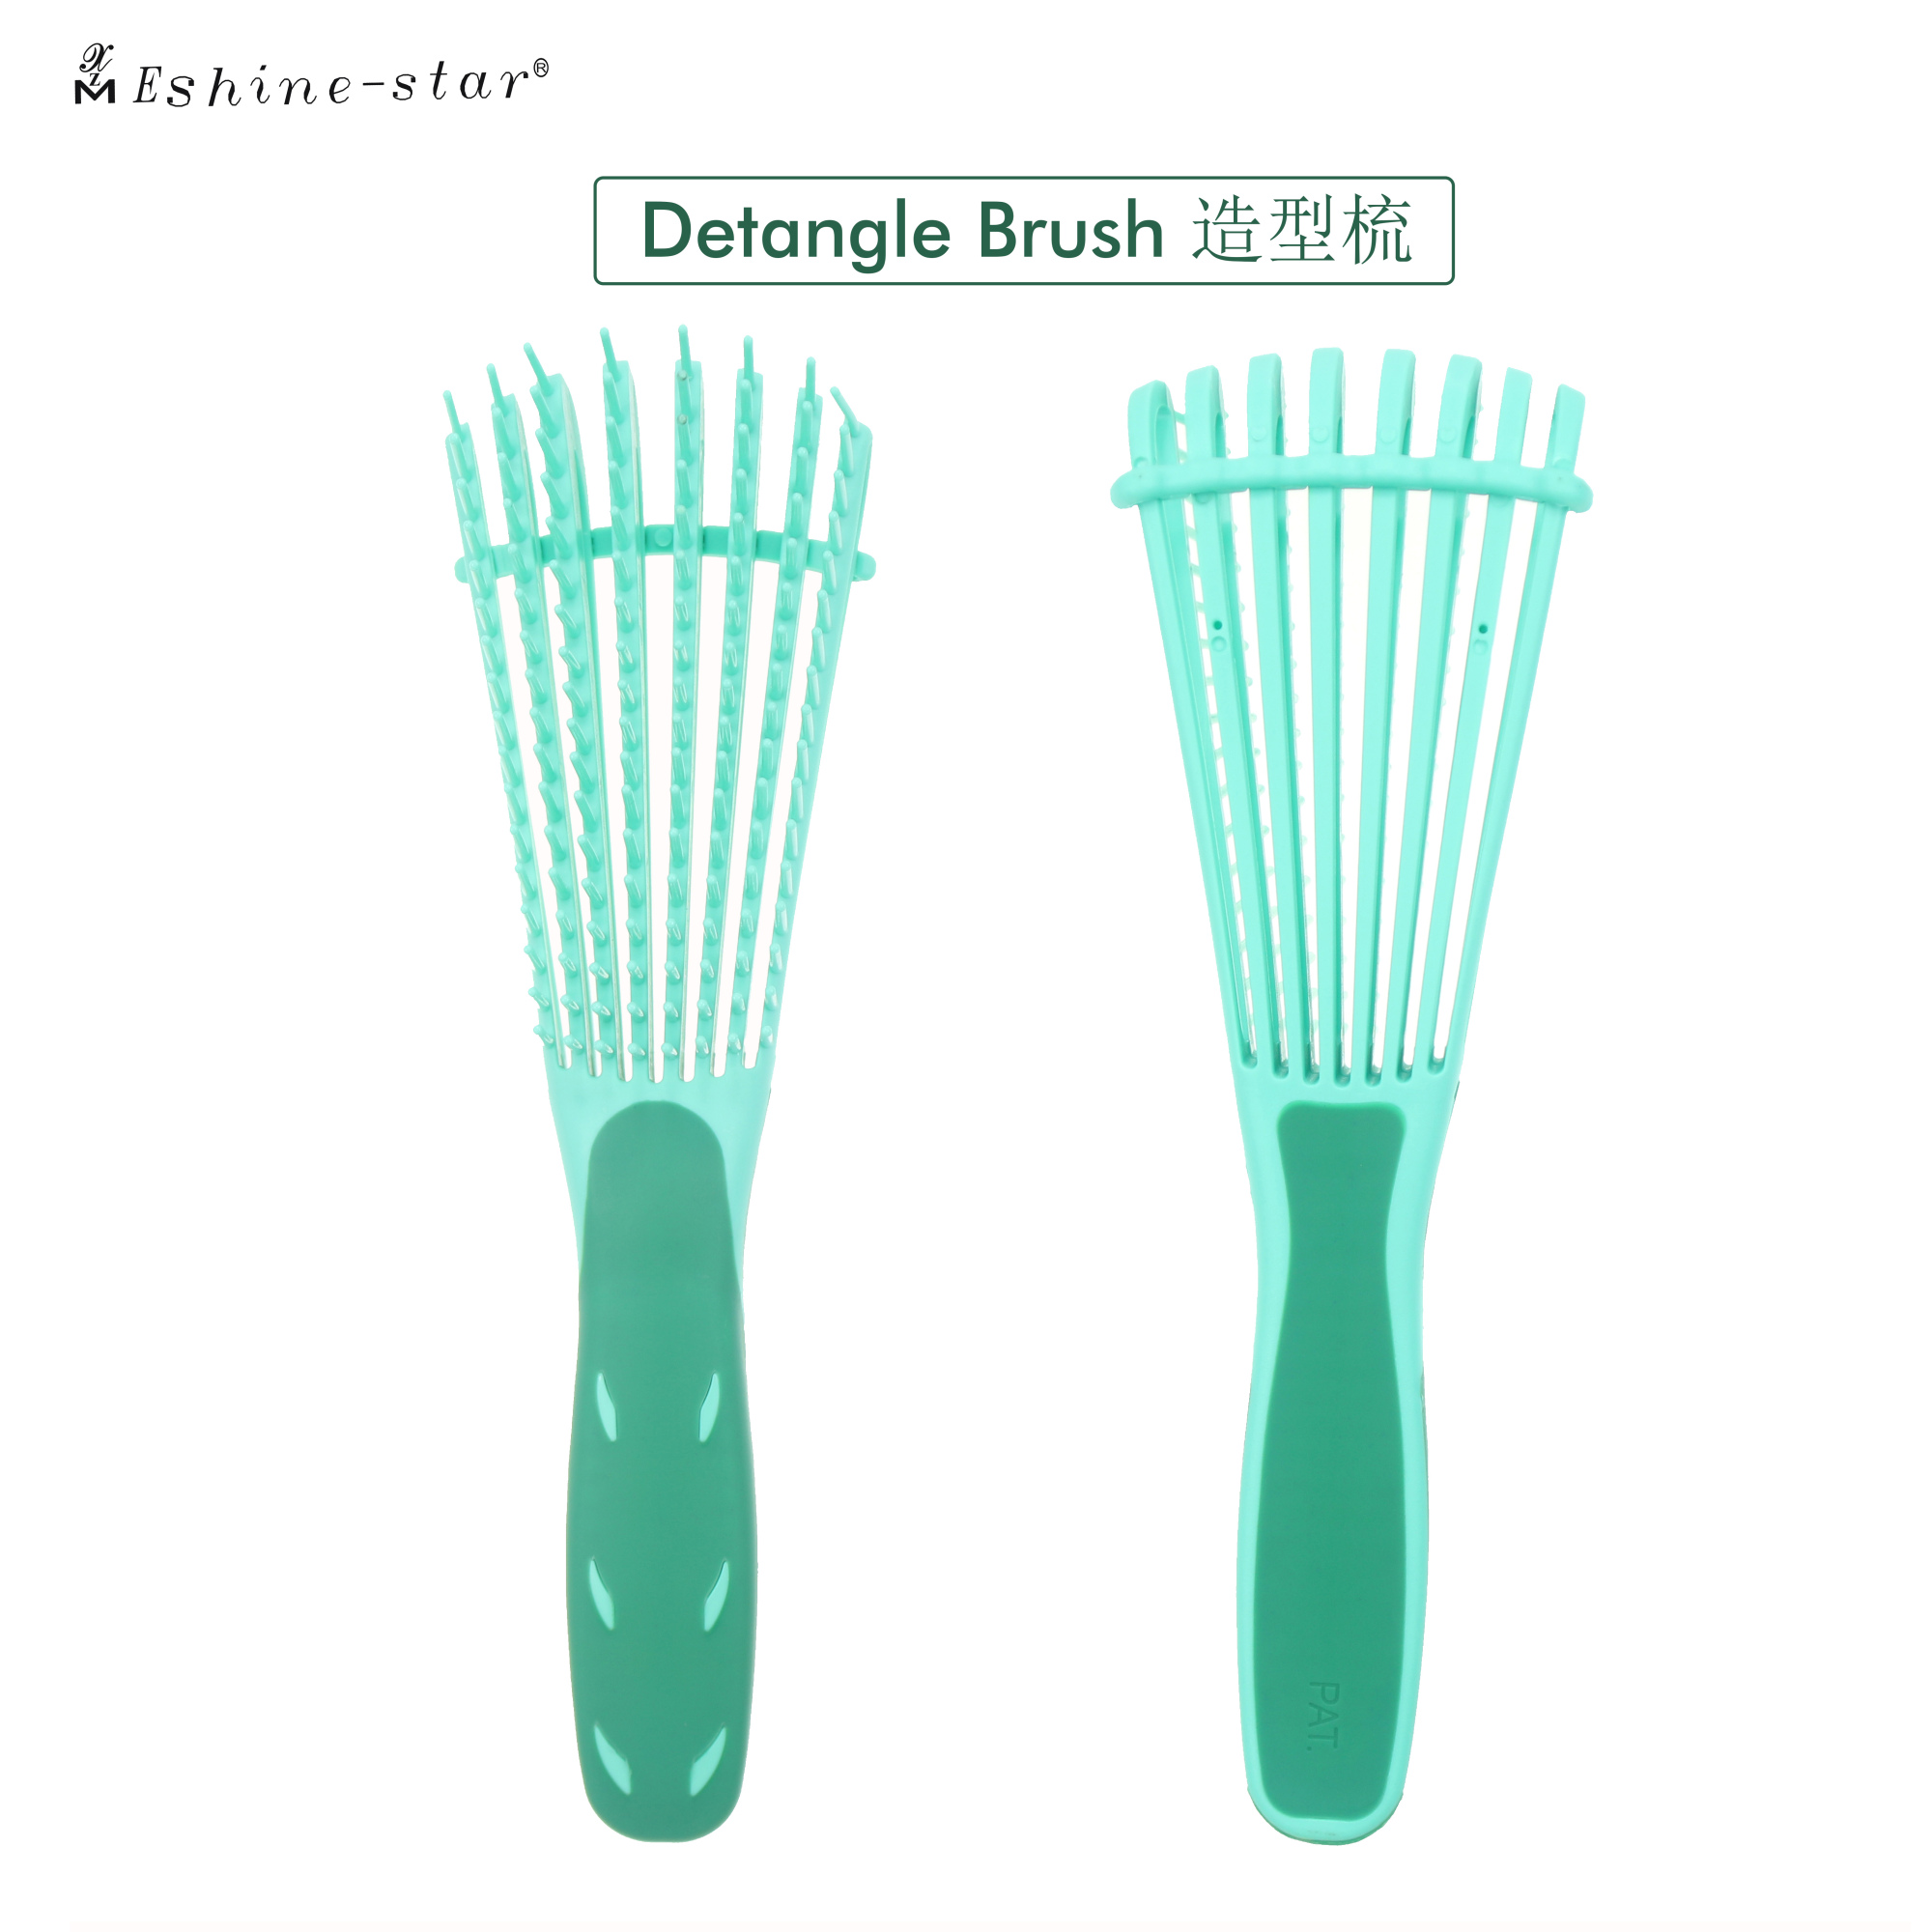 new Customized logo good quality rubber handle soft flexible teeth detangling hair brush vent hair brush manufacturer